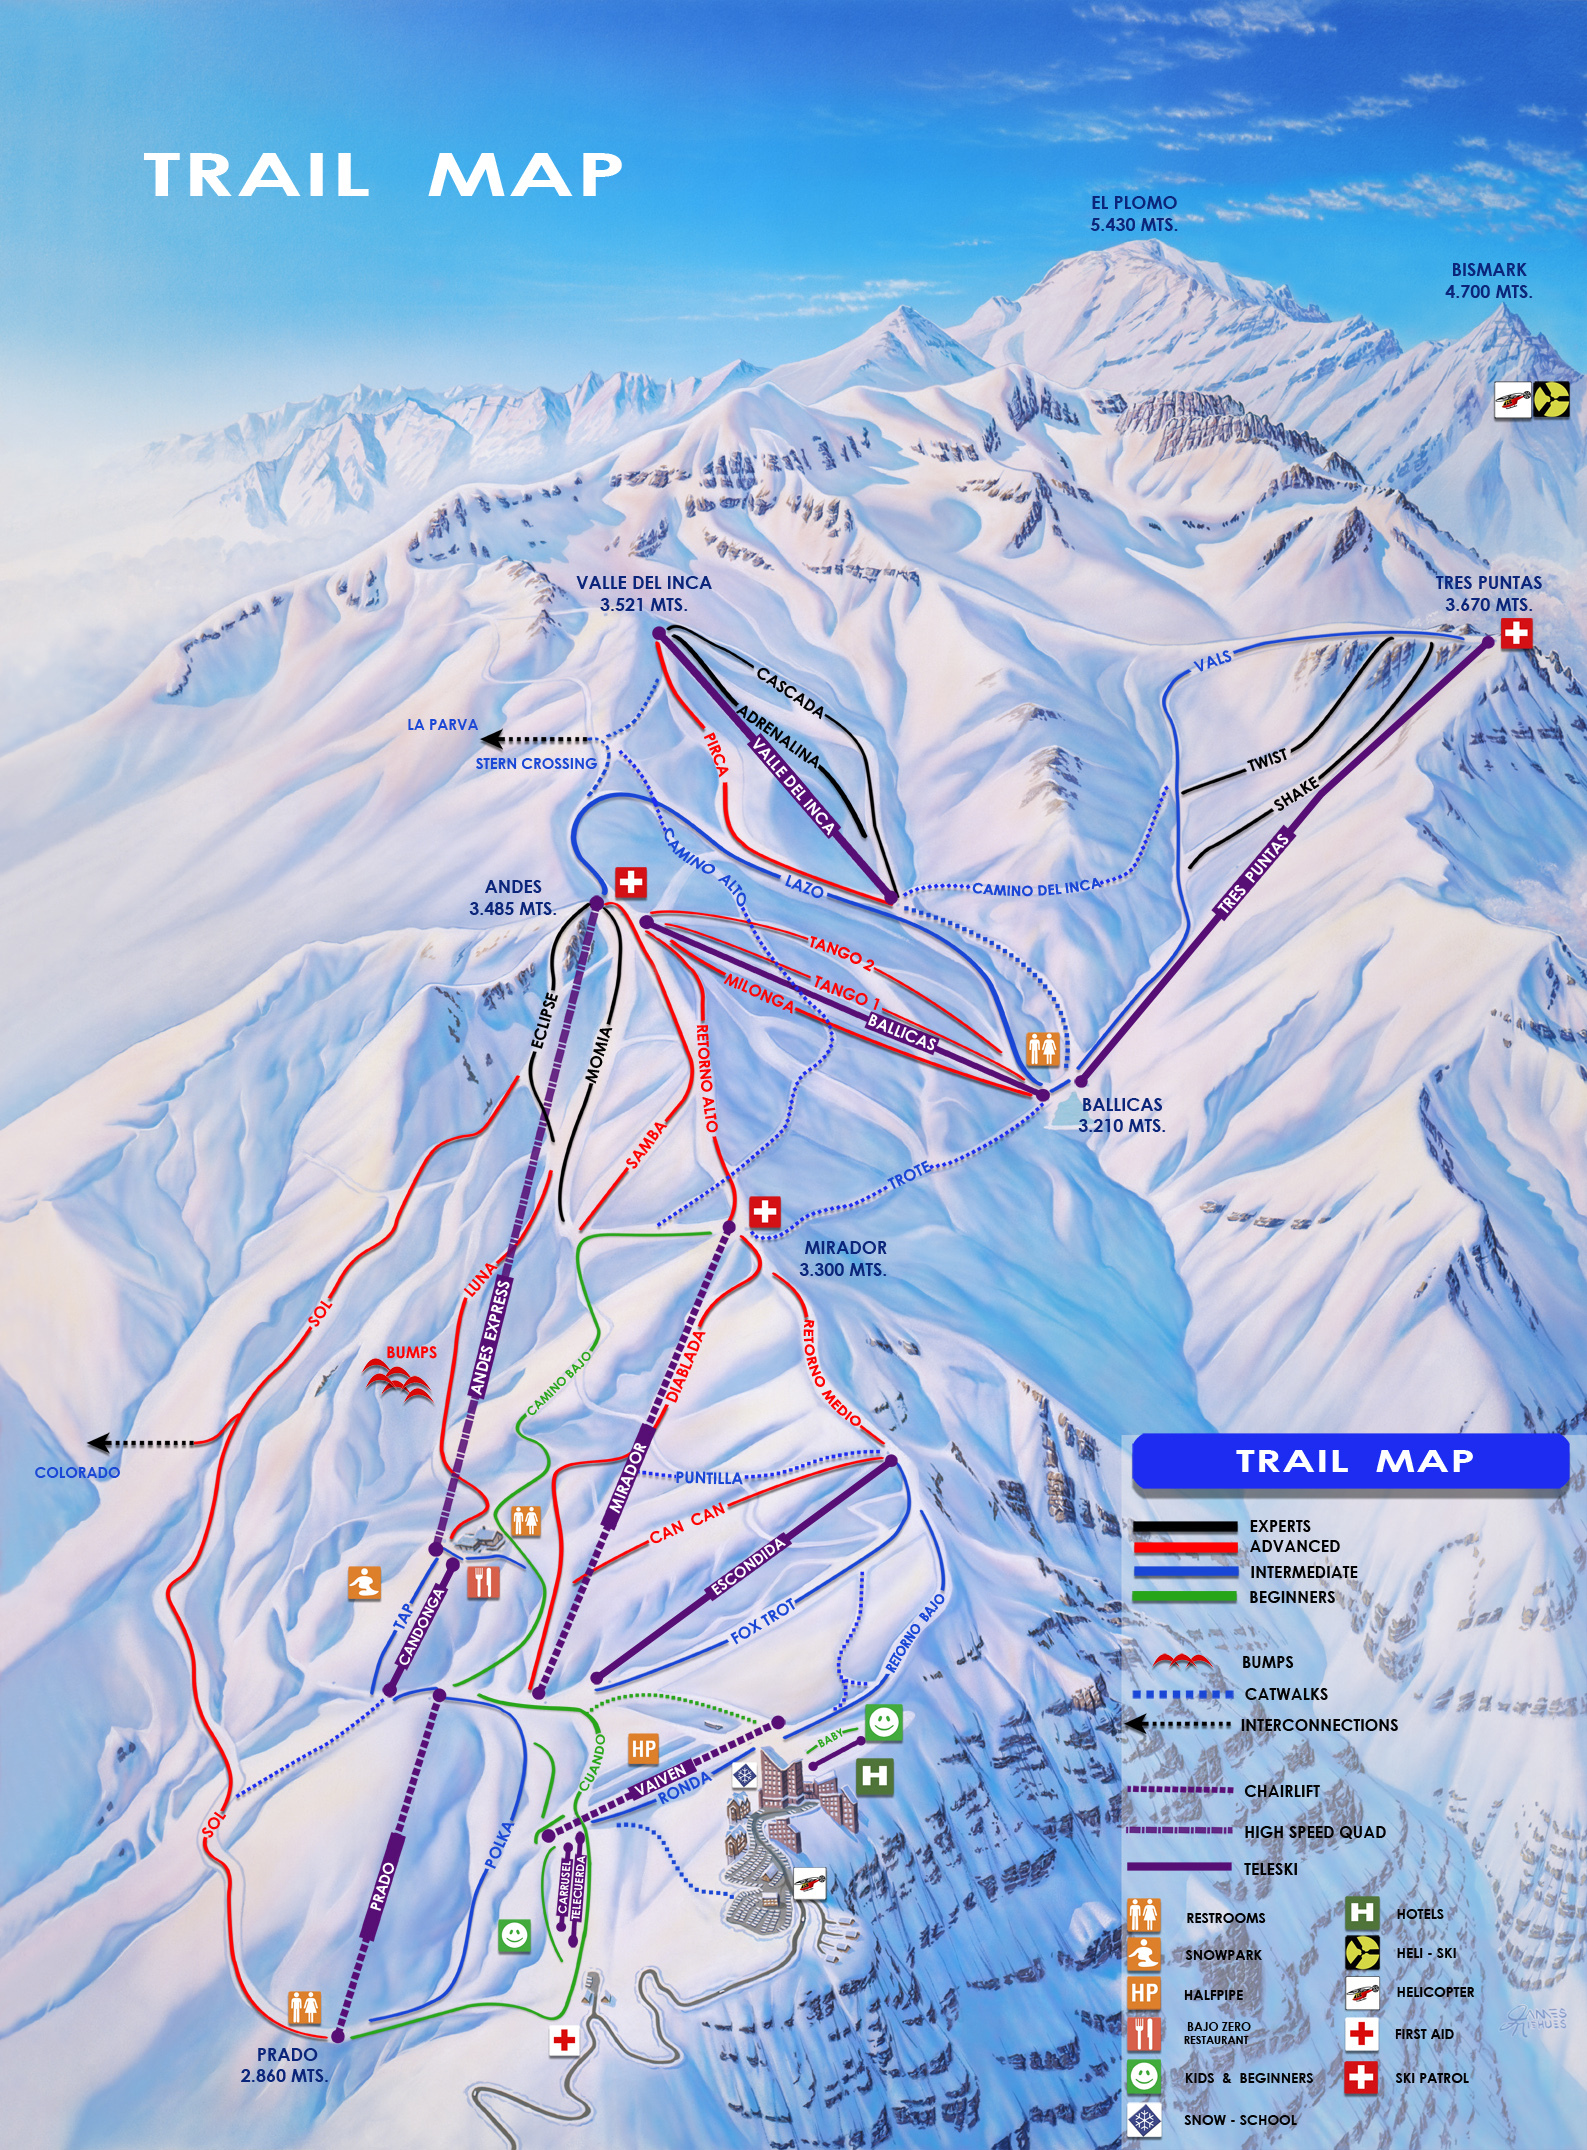 Valle Nevado Piste / Trail Map